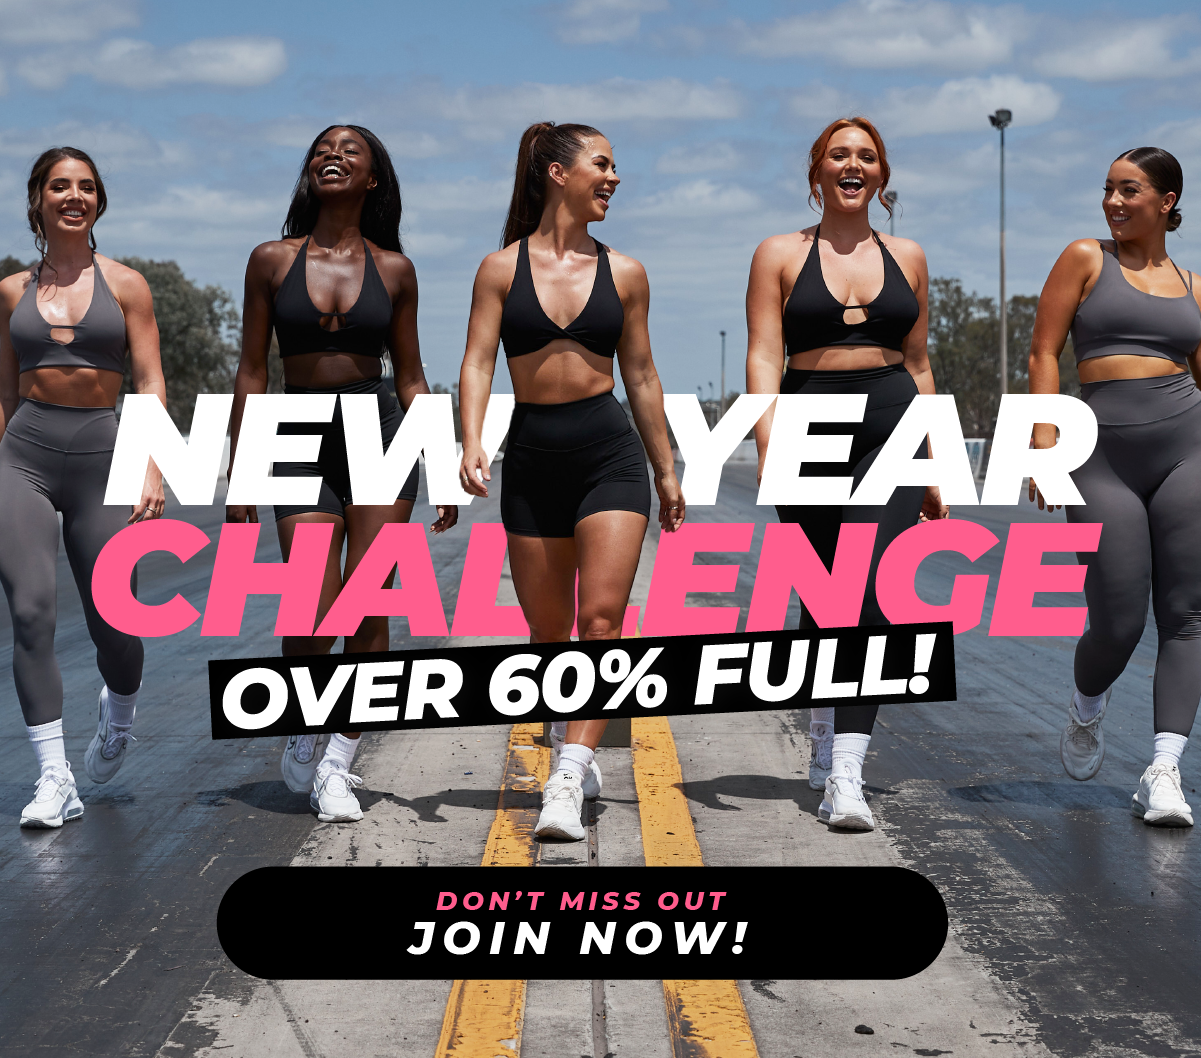 Secure your place to the Challenge now